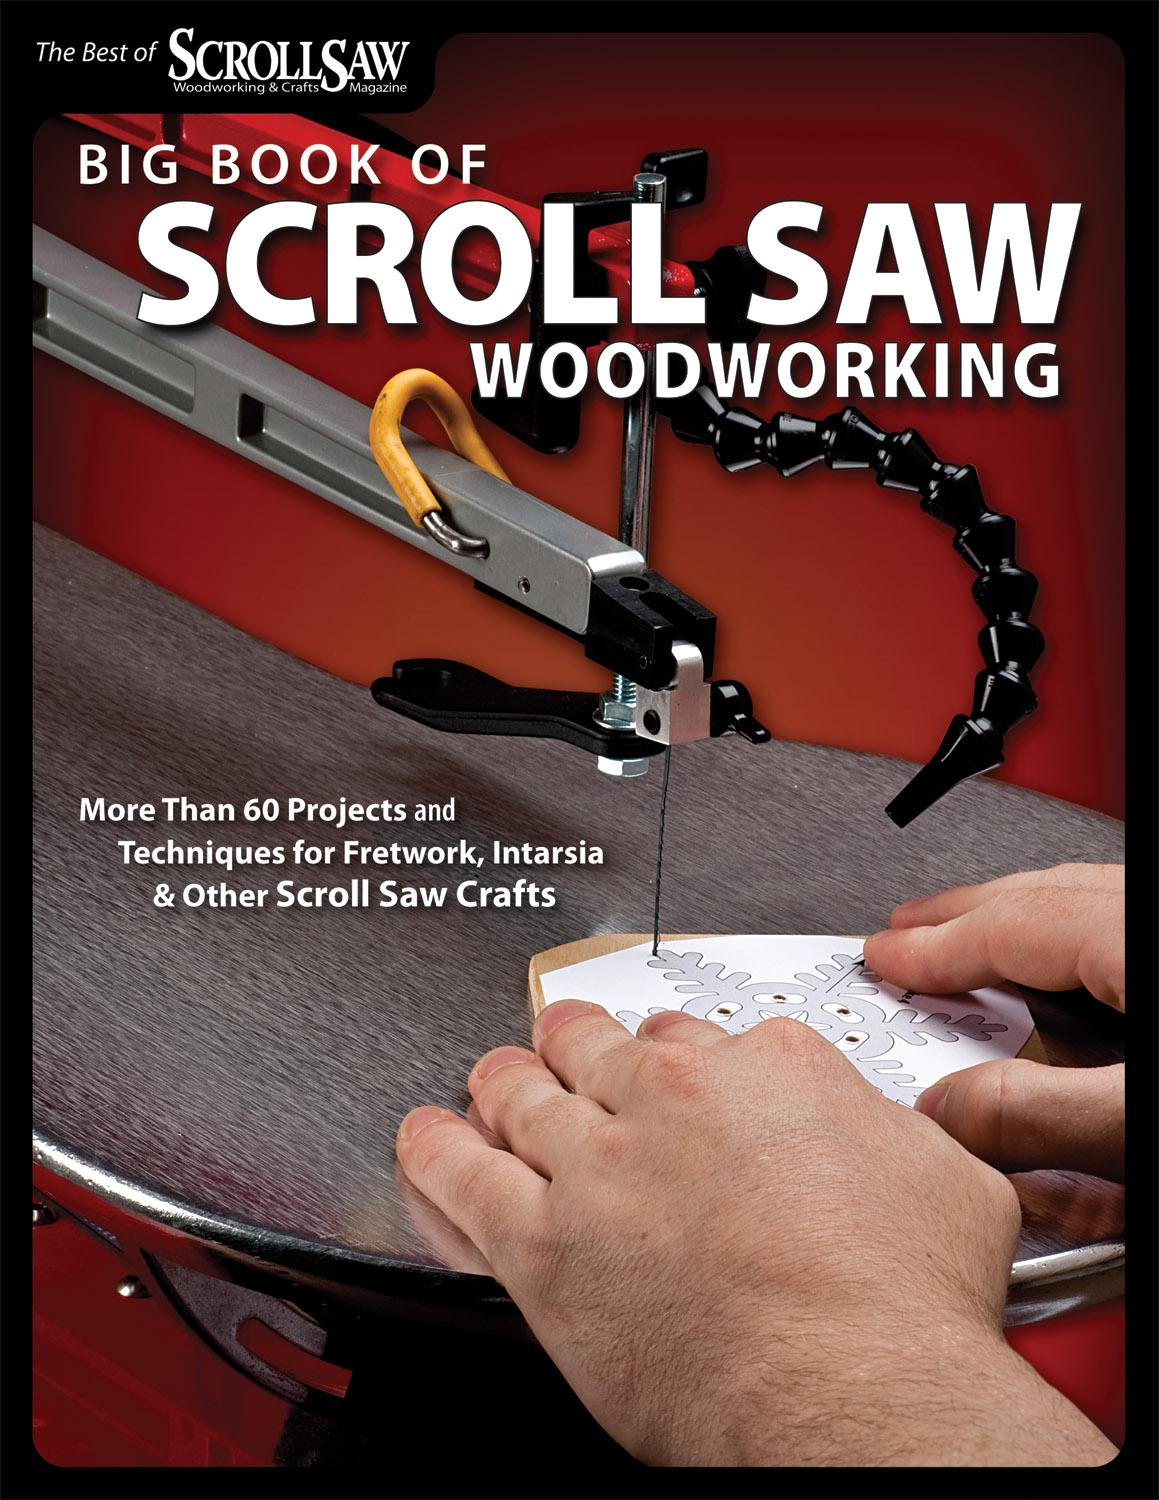 Big Book of Scroll Saw Woodworking by